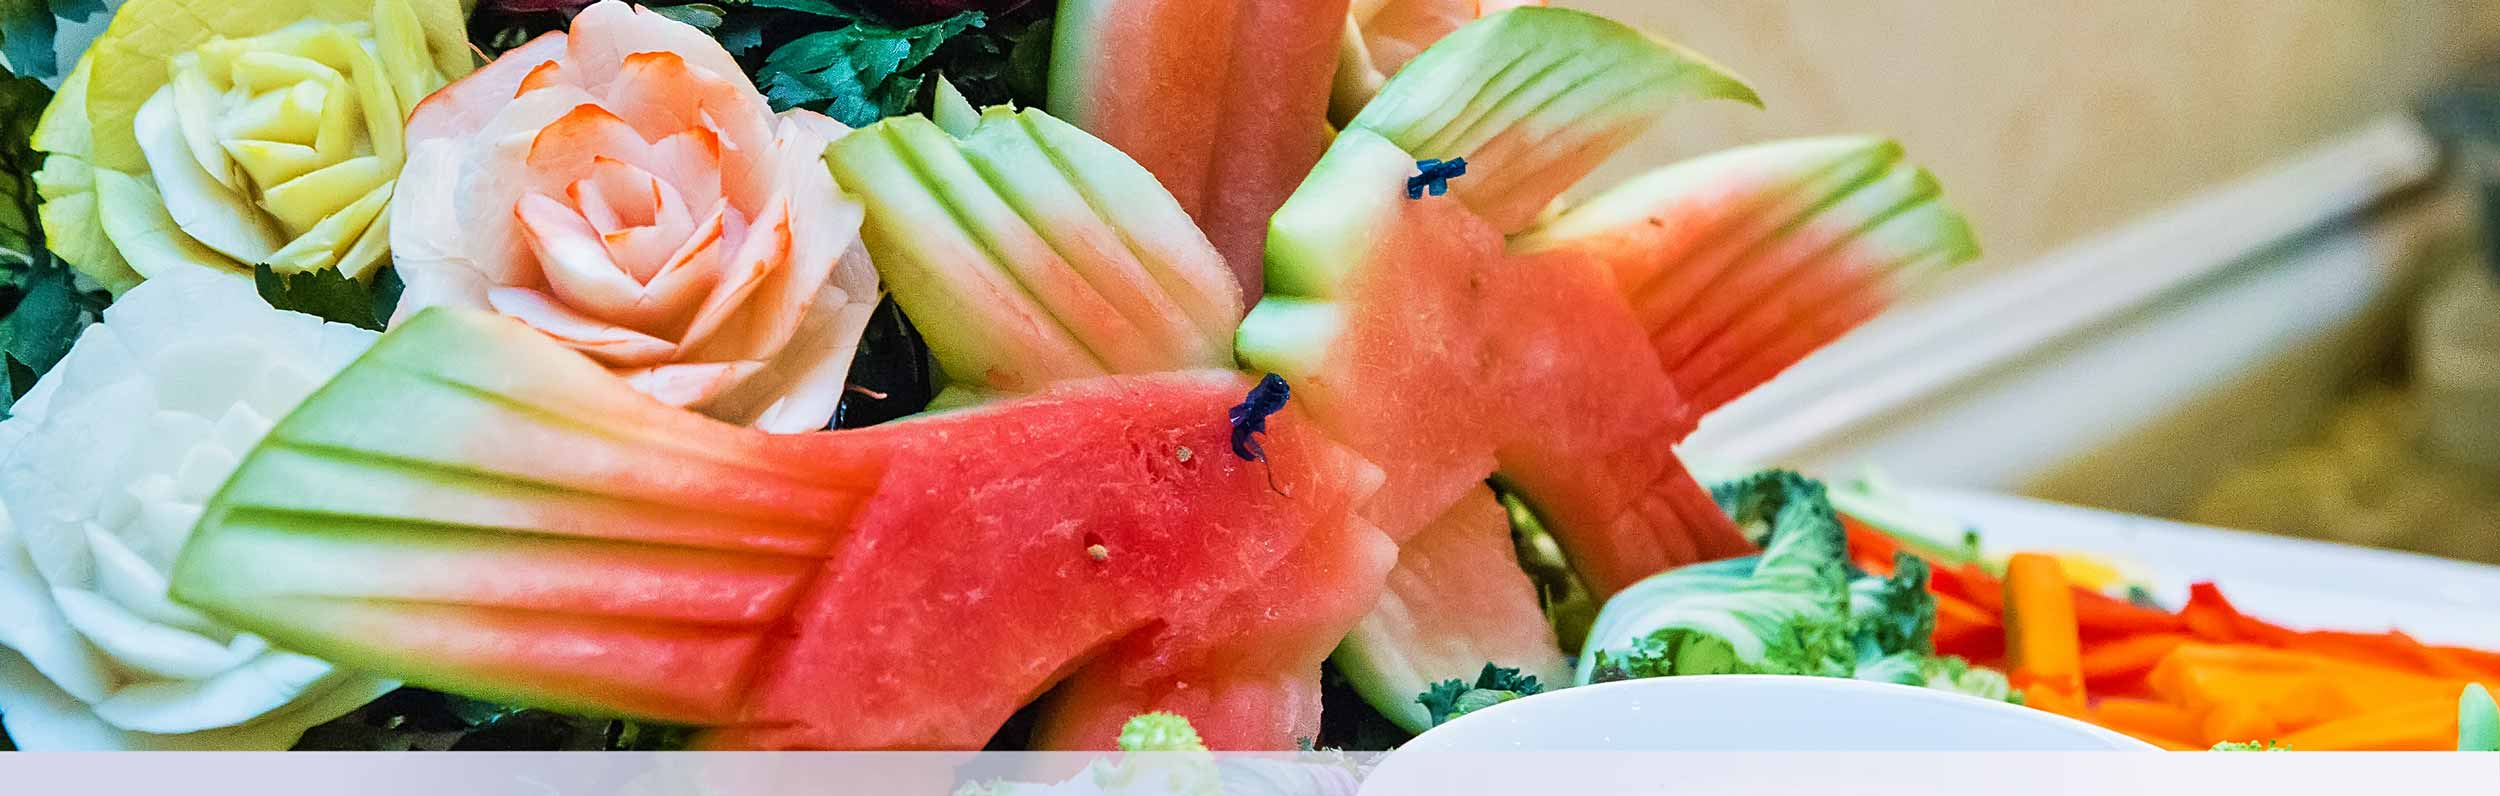 Event Banner 2 Watermelon Carved Like Fish Event Catering